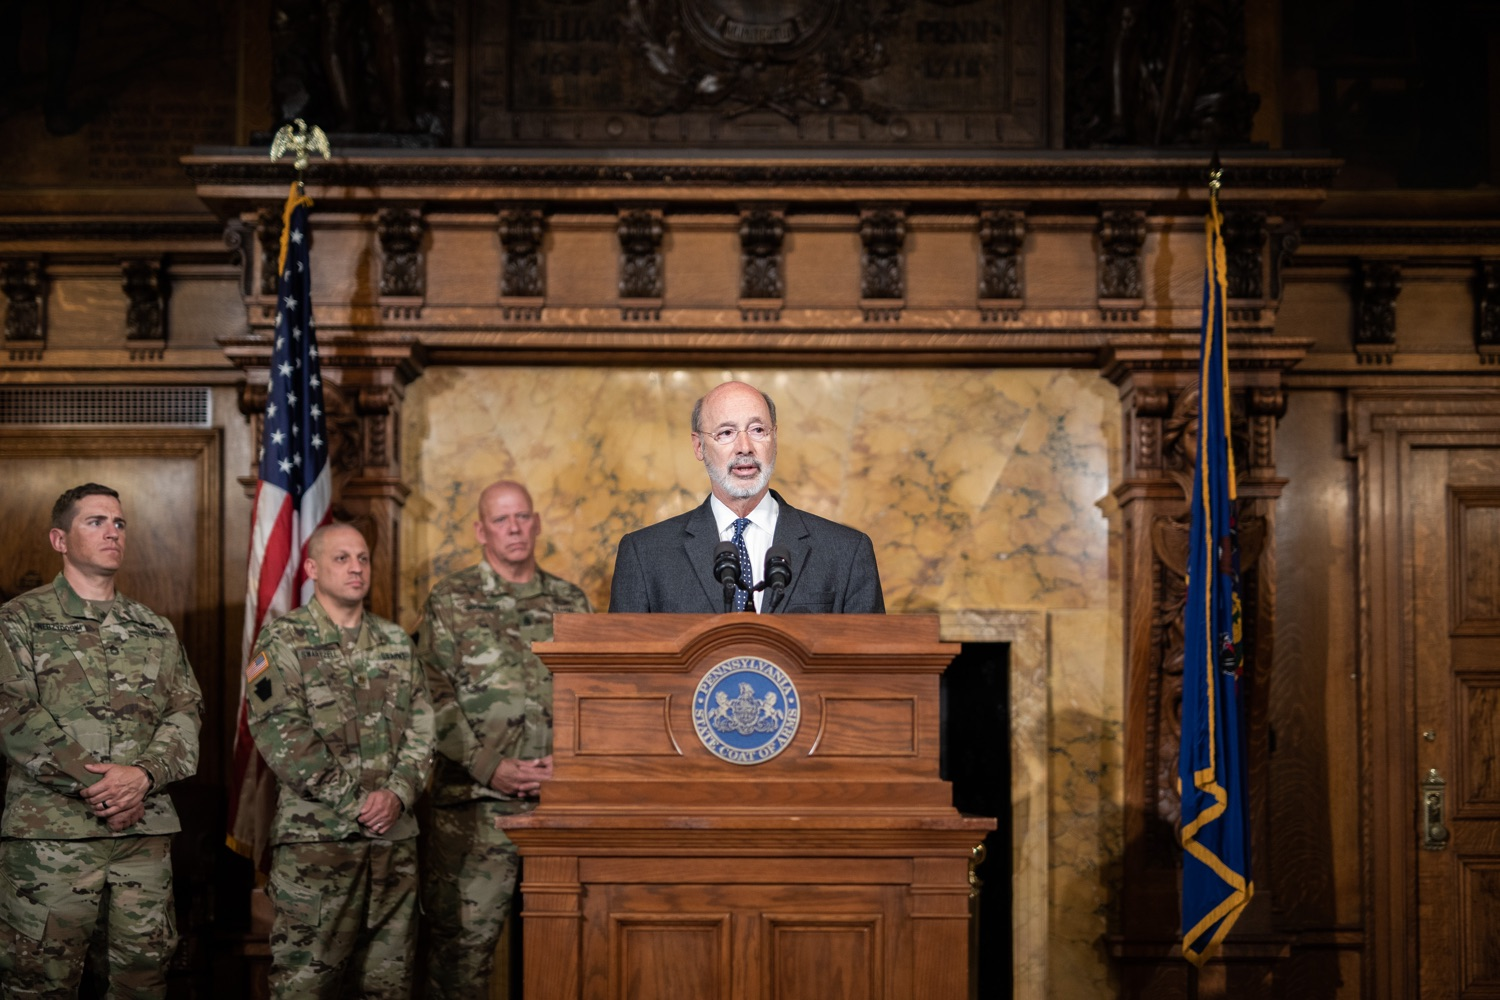 "<a href=""http://filesource.abacast.com/commonwealthofpa/photo/17423_gov_trip_recap_dz_007.jpg"" target=""_blank"">⇣ Download Photo<br></a>Harrisburg, PA  Governor Tom Wolf speaking about his recent visit to Lithuania and Poland.  Governor Tom Wolf today highlighted the second half of his trip abroad, including visiting with more than 500 PA National Guard (PNG) troops in Poland, and honoring the Tree of Life synagogue victims at the Auschwitz-Birkenau Memorial. Tuesday, September 17, 2019"